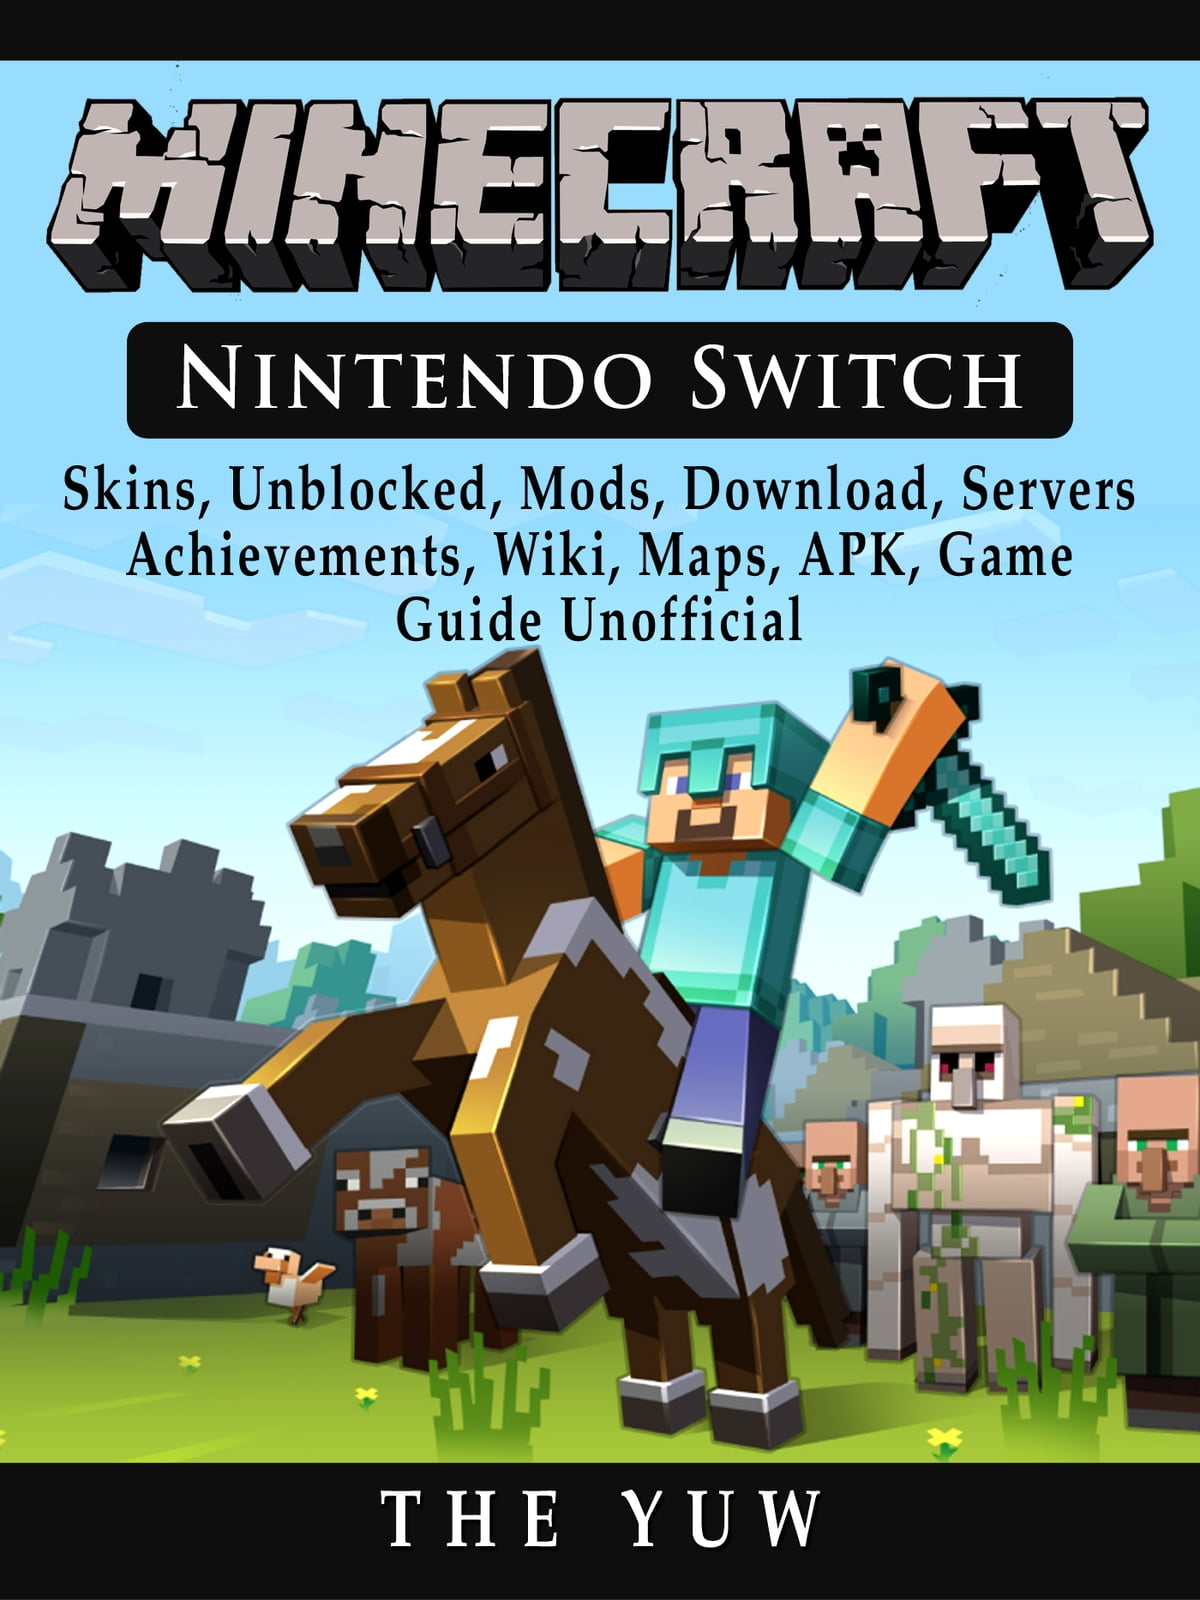 Minecraft Nintendo Switch, Skins, Unblocked, Mods, Download, Servers,  Achievements, Wiki, Maps, APK, Game Guide Unofficial ebook by The Yuw -  Rakuten